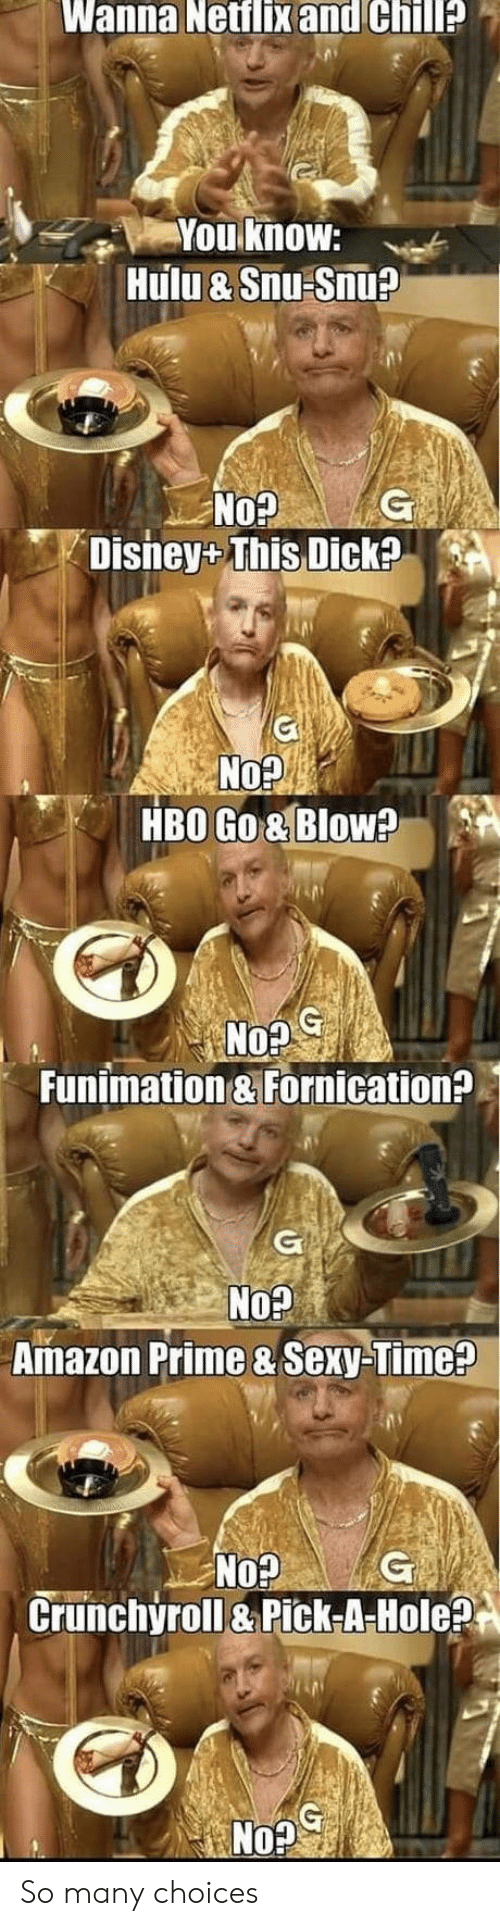 fornication: Wanna Netflix and Chill?  You know:  Hulu & Snu Snu?  G  No?  Disney+ This Dick?  No?  HBO Go& Blow?  G  No?  Funimation & Fornication?  G  No?  Amazon Prime & Sexy-Time?  No?  Crunchyroll&Pick-A-Hole?  G So many choices